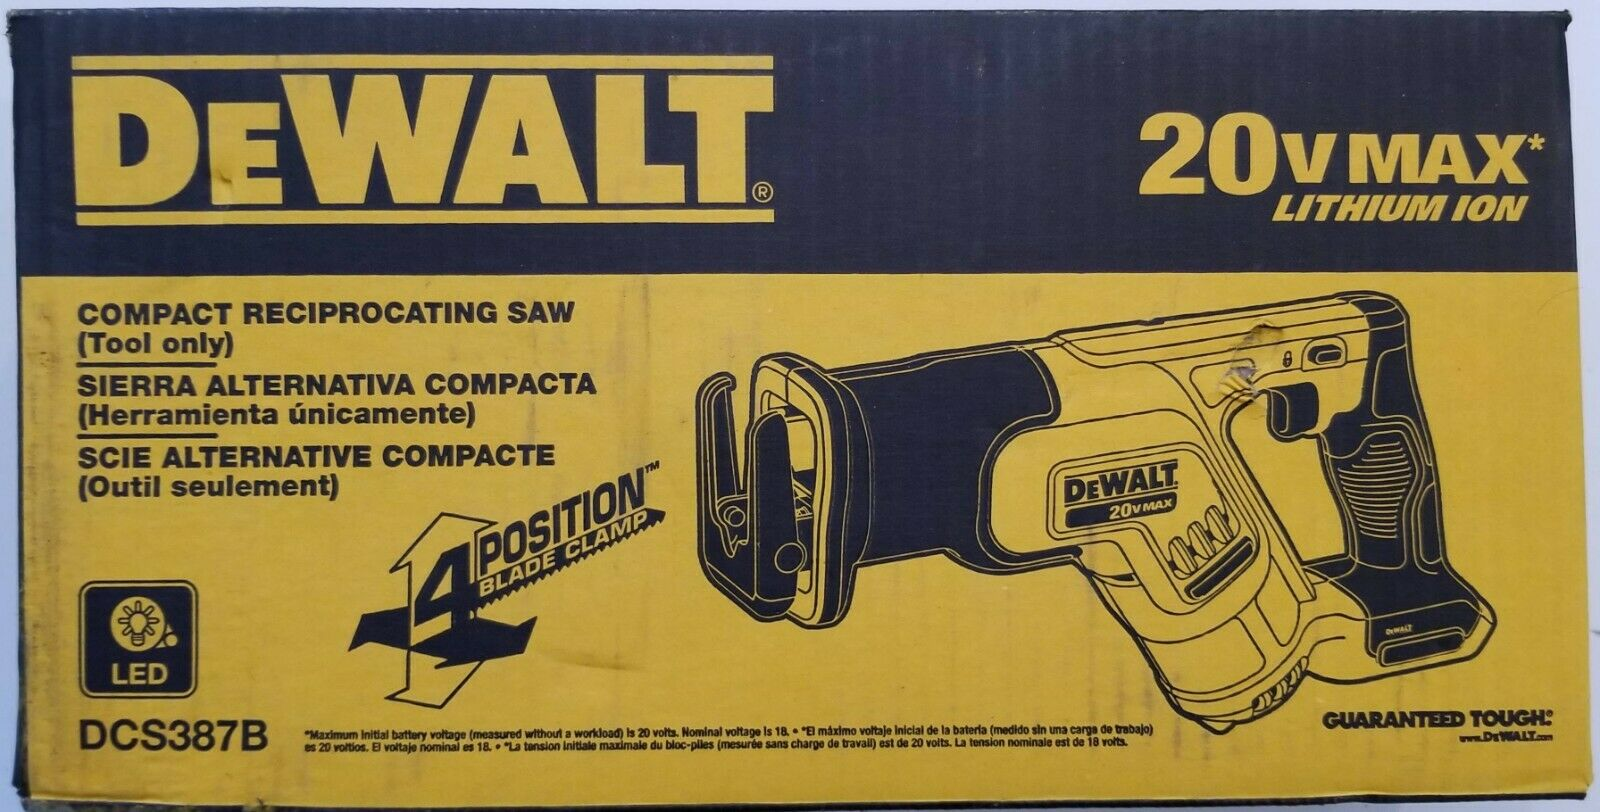 DEWALT DCS387B 20V 20 Volt Max Cordless Compact Reciprocating Saw Tool Only NIP